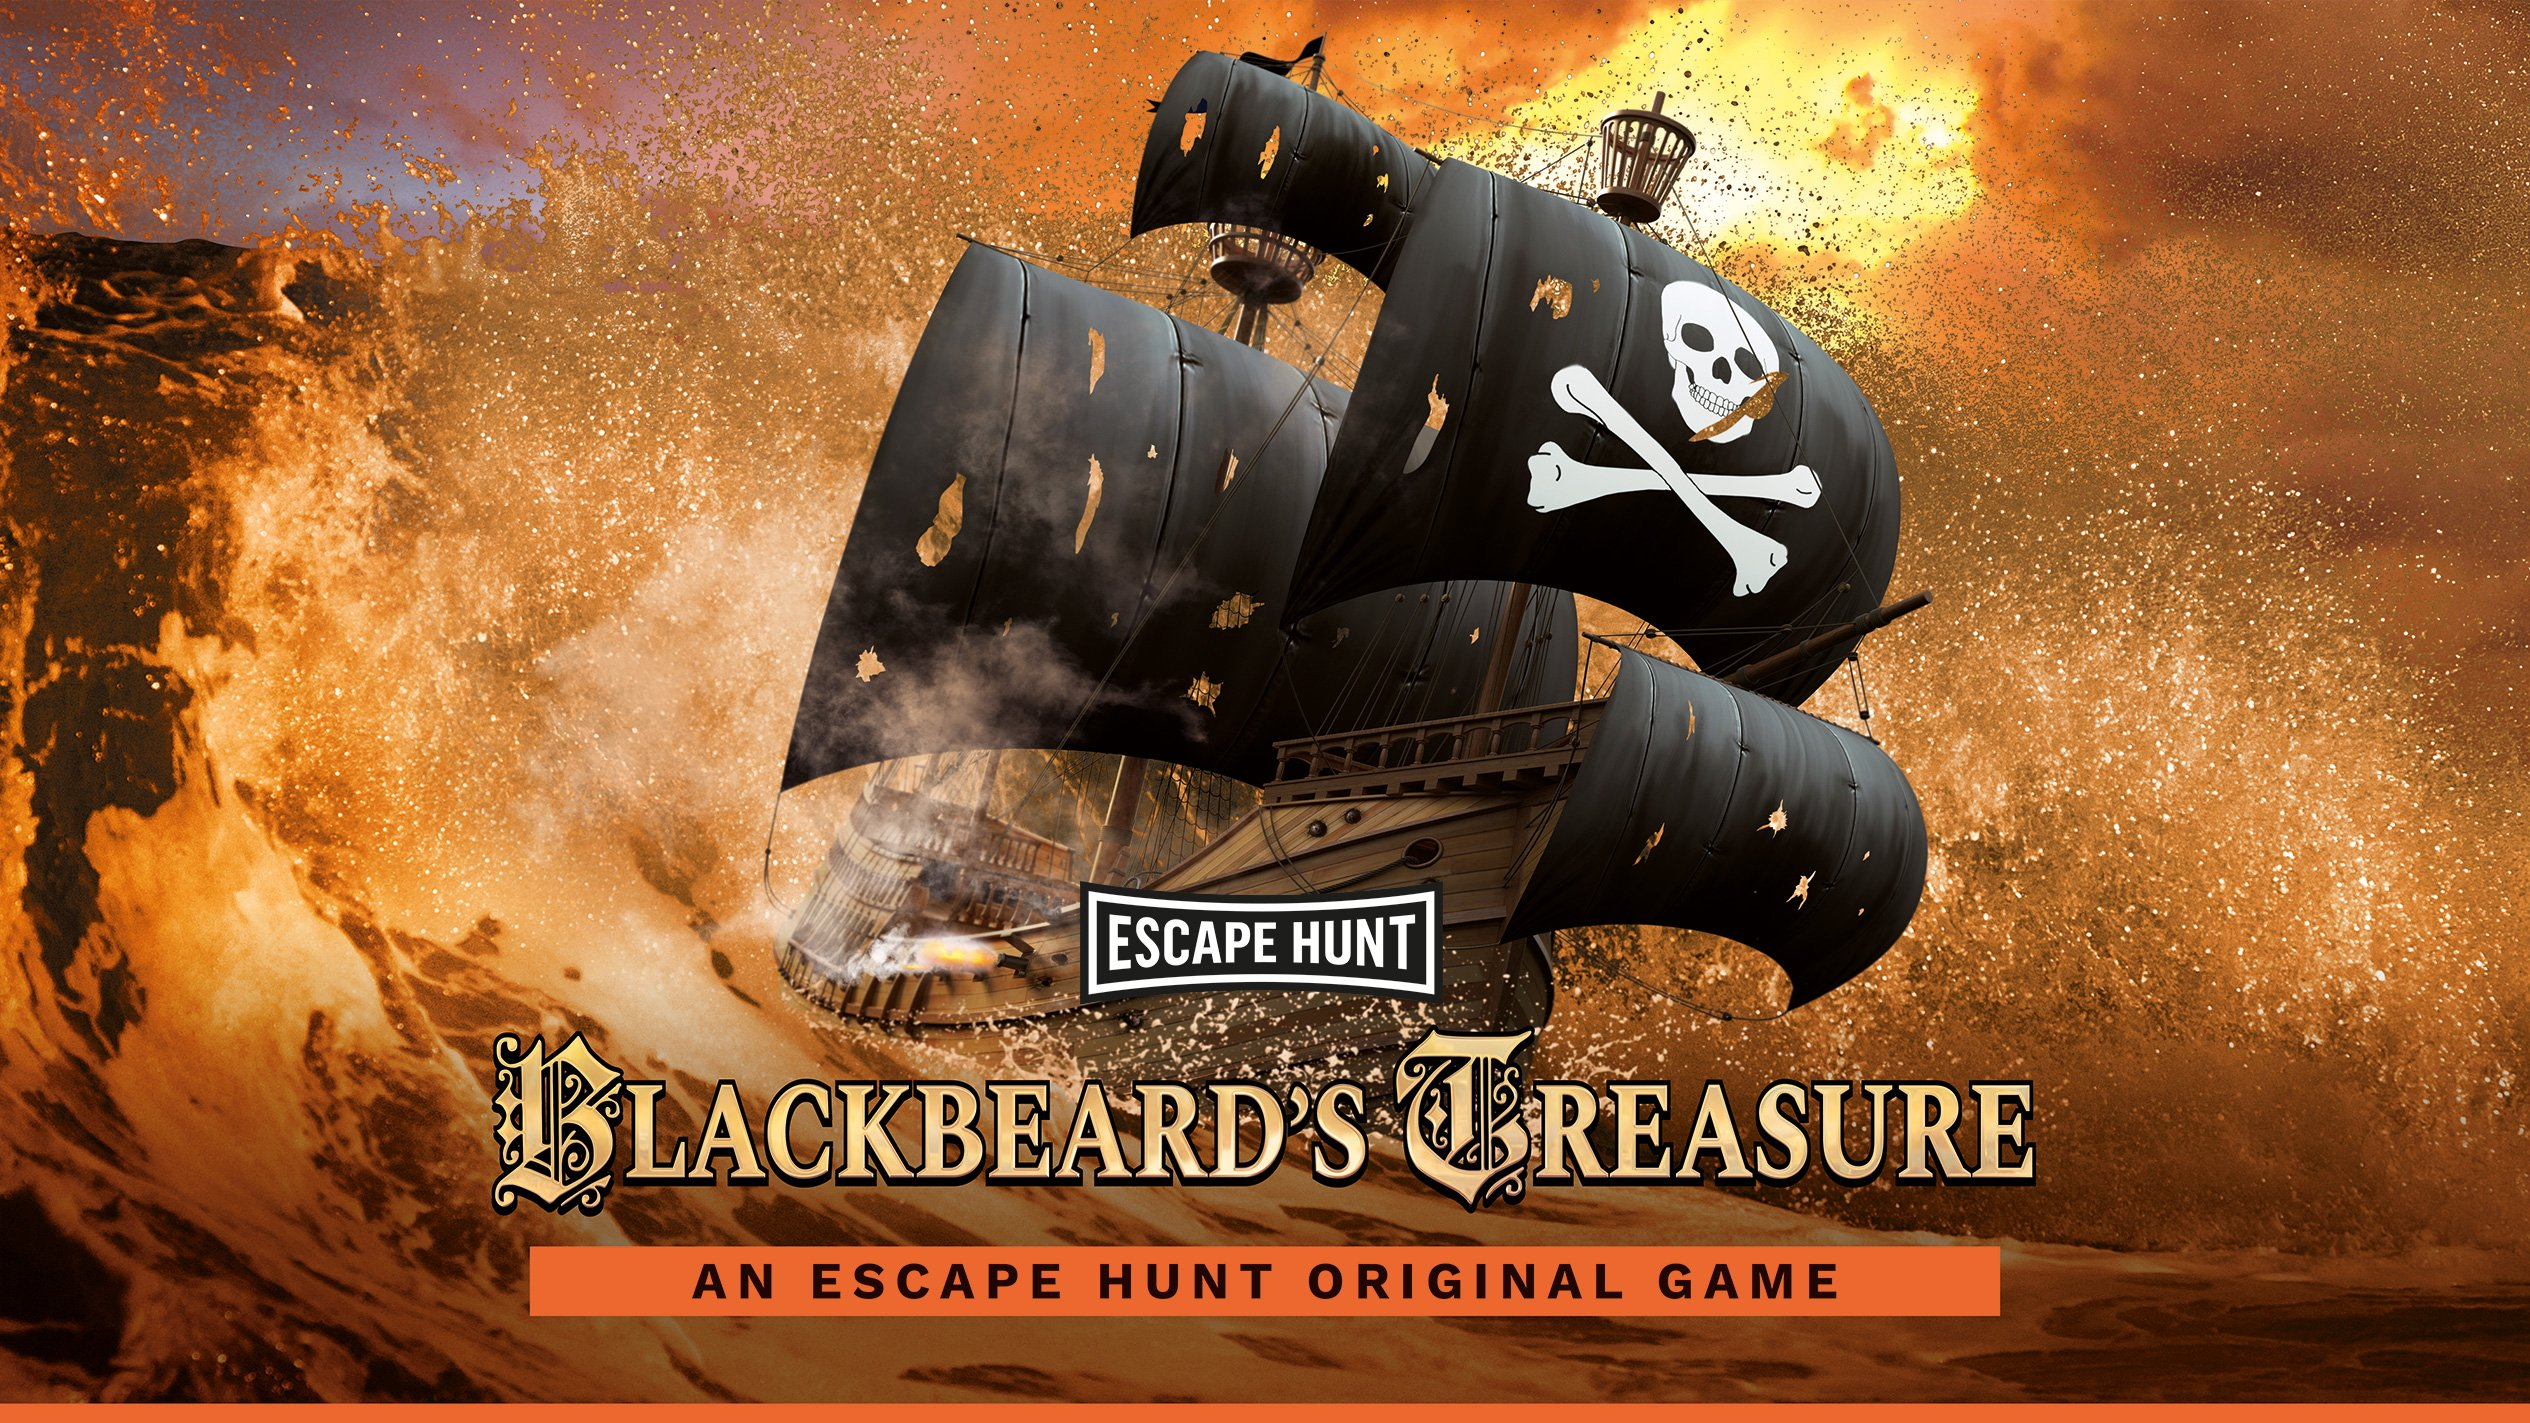 Escape Hunt: Blackbeard's Treasure